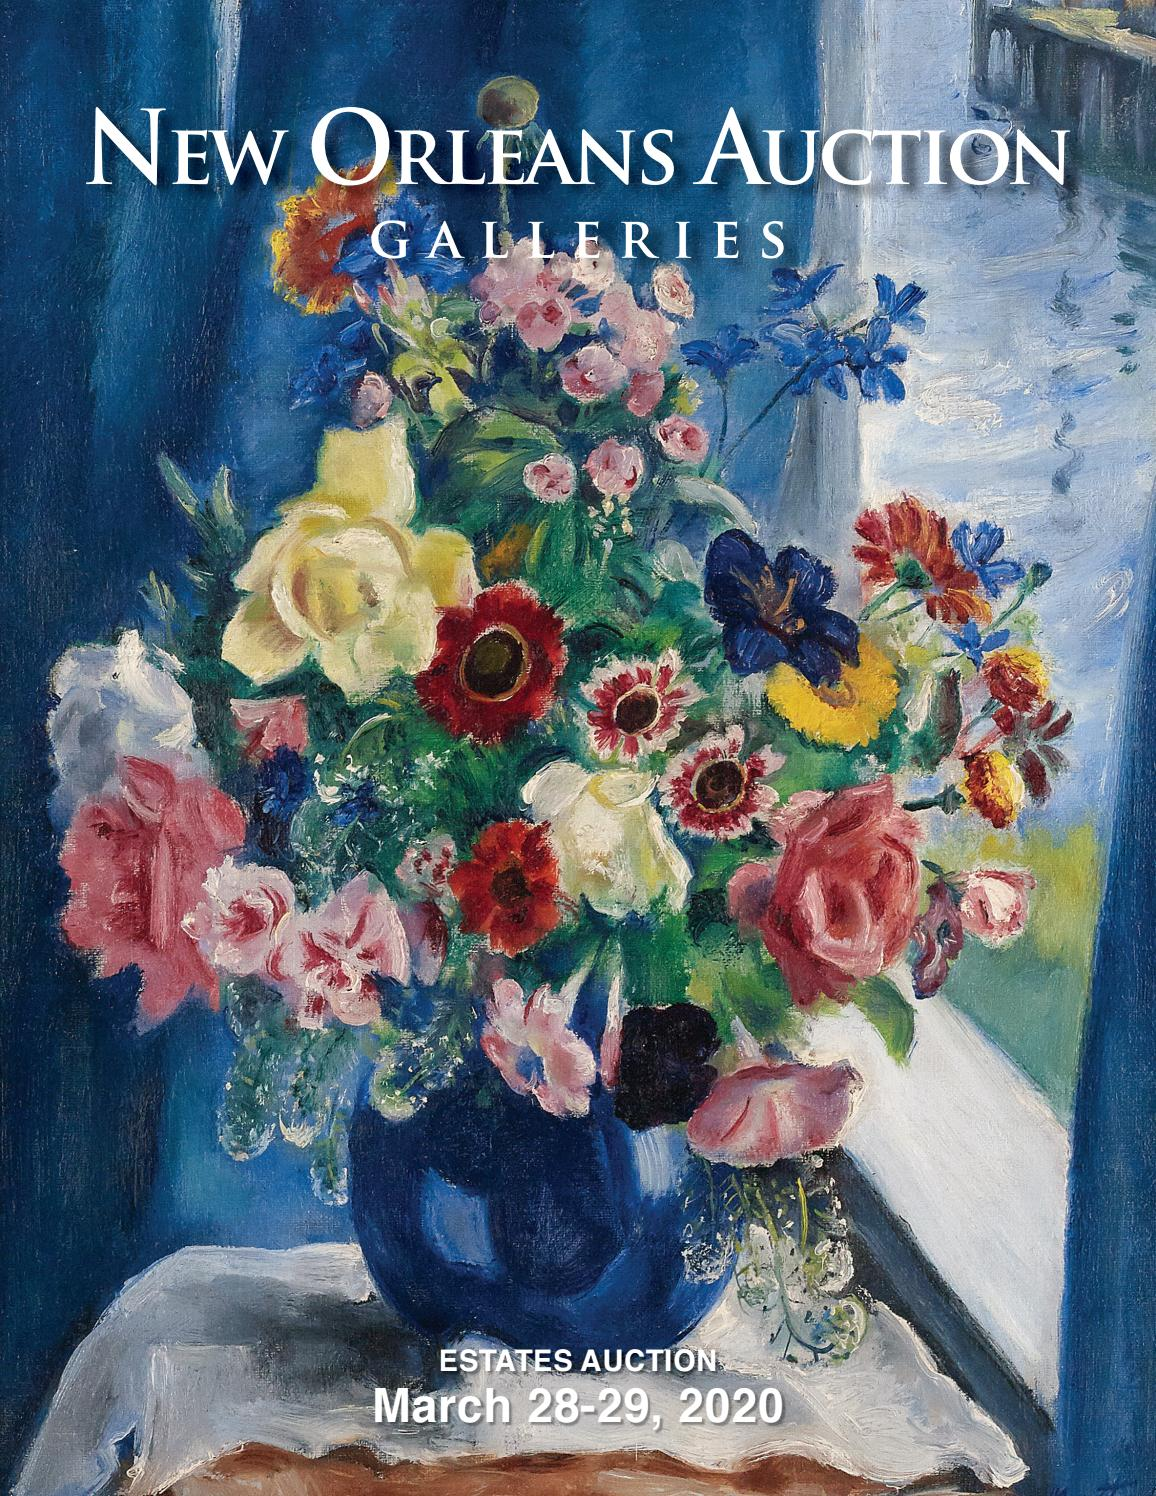 Gros Pot De Fleur En Pierre march 28-29, 2020 estates auctionnew orleans auction